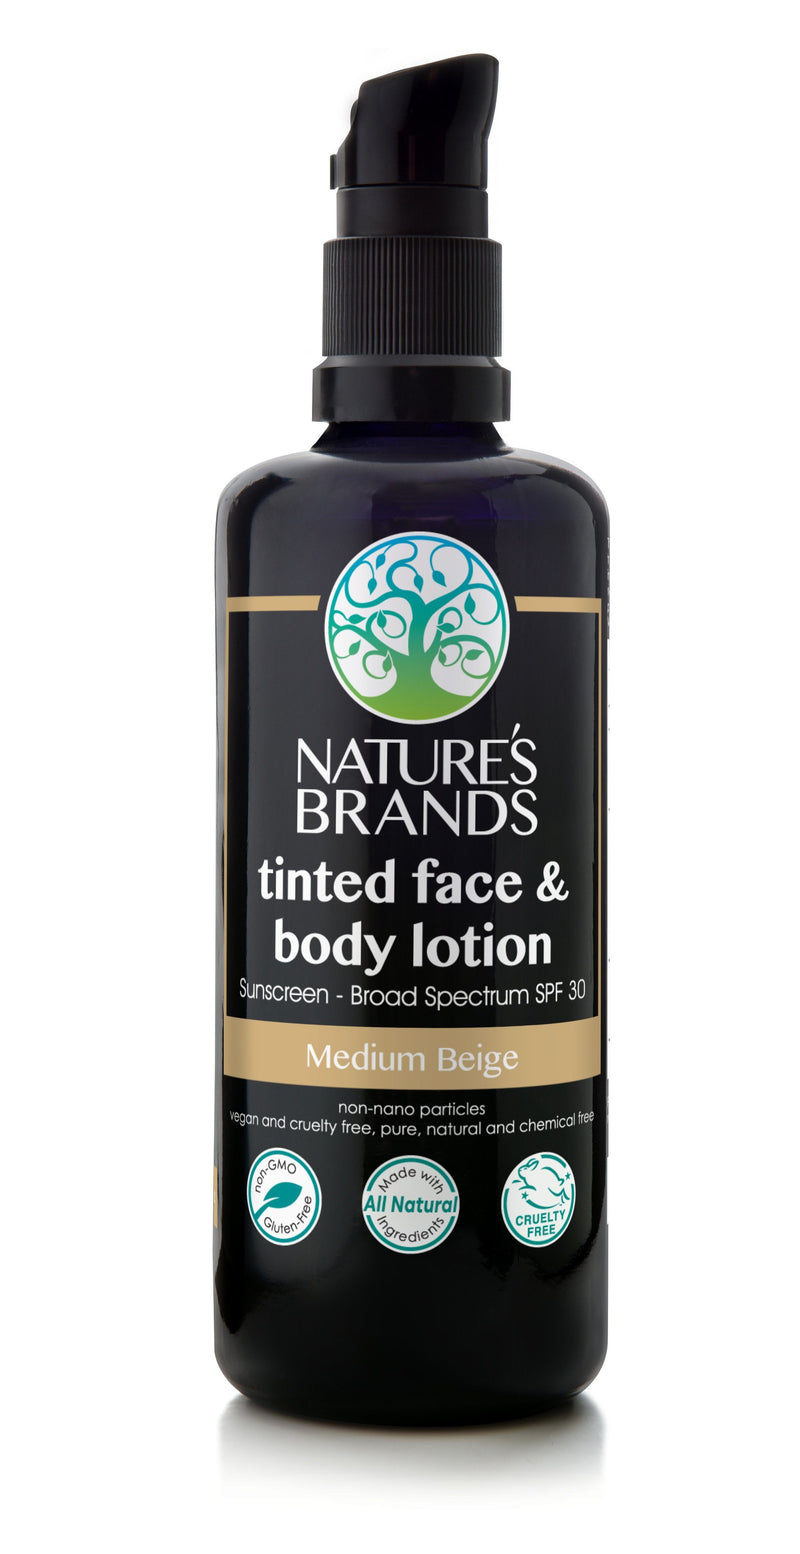 Herbal Choice Mari Natural SPF 30 Tinted Face & Body Lotion - Herbal Choice Mari Natural SPF 30 Tinted Face & Body Lotion - Herbal Choice Mari Natural SPF 30 Tinted Face & Body Lotion